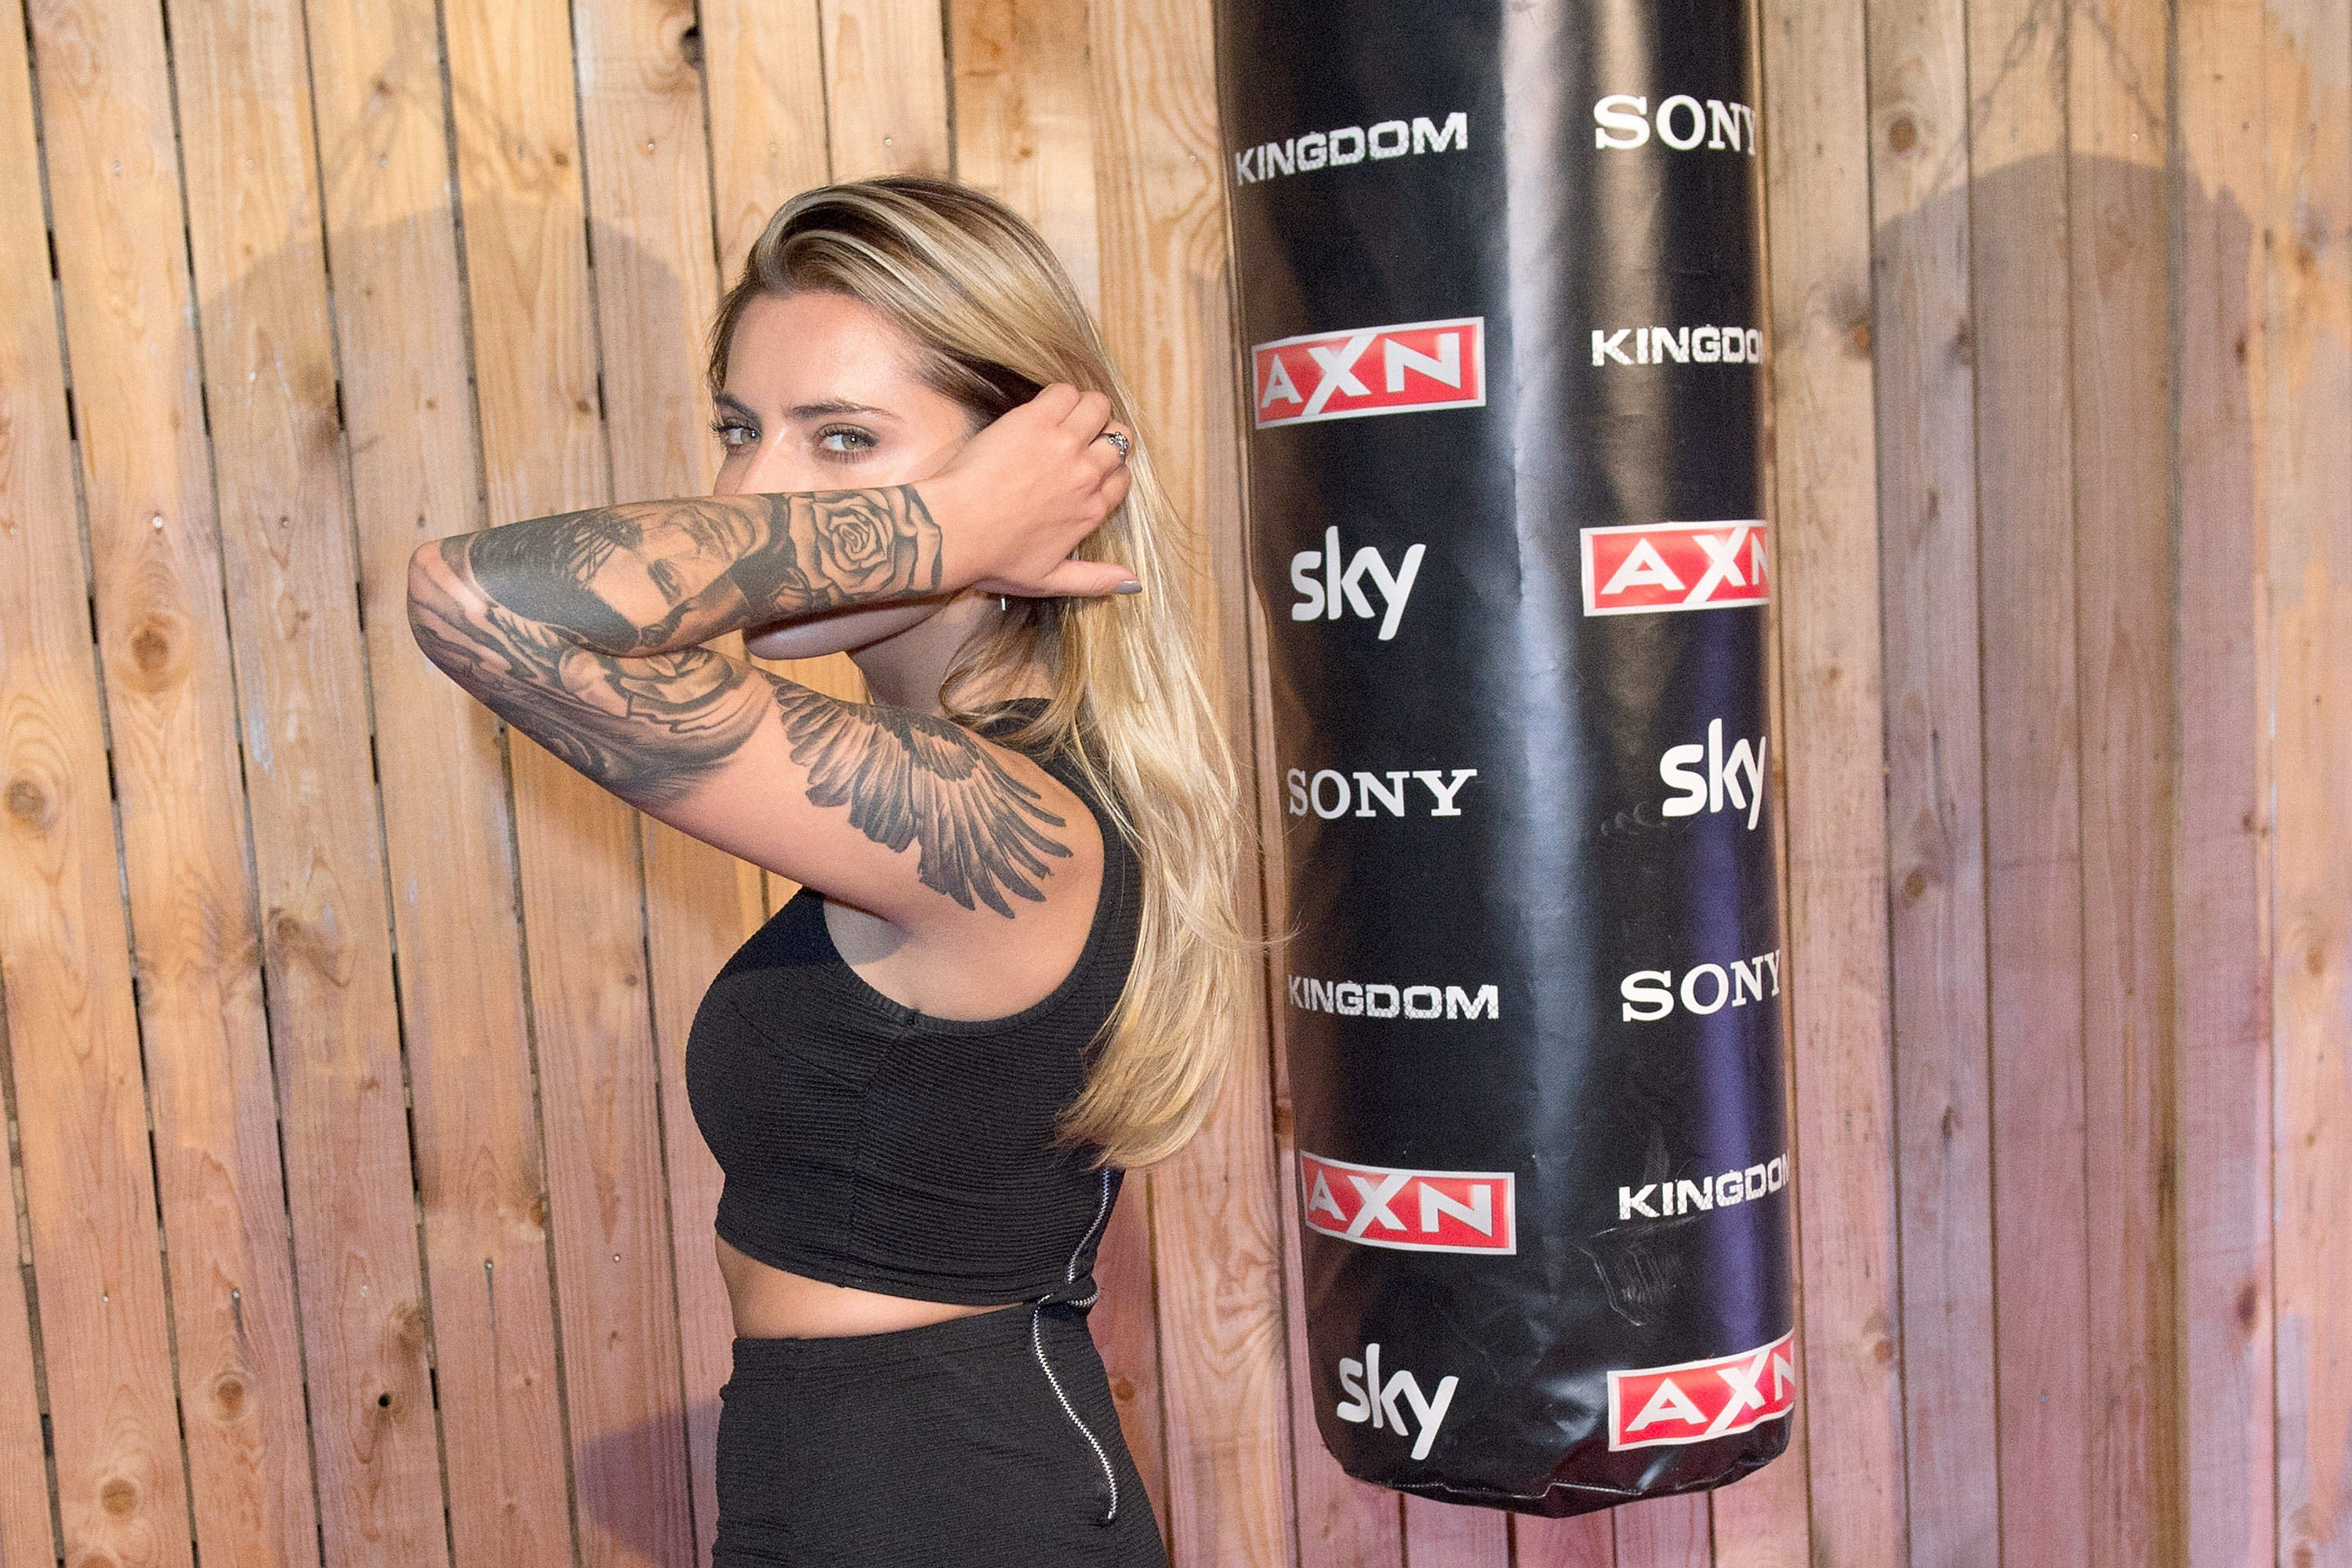 BERLIN, GERMANY - SEPTEMBER 23:  Sophia Thomalla attends the premiere for the AXN series 'Kingdom' on September 23, 2015 in B